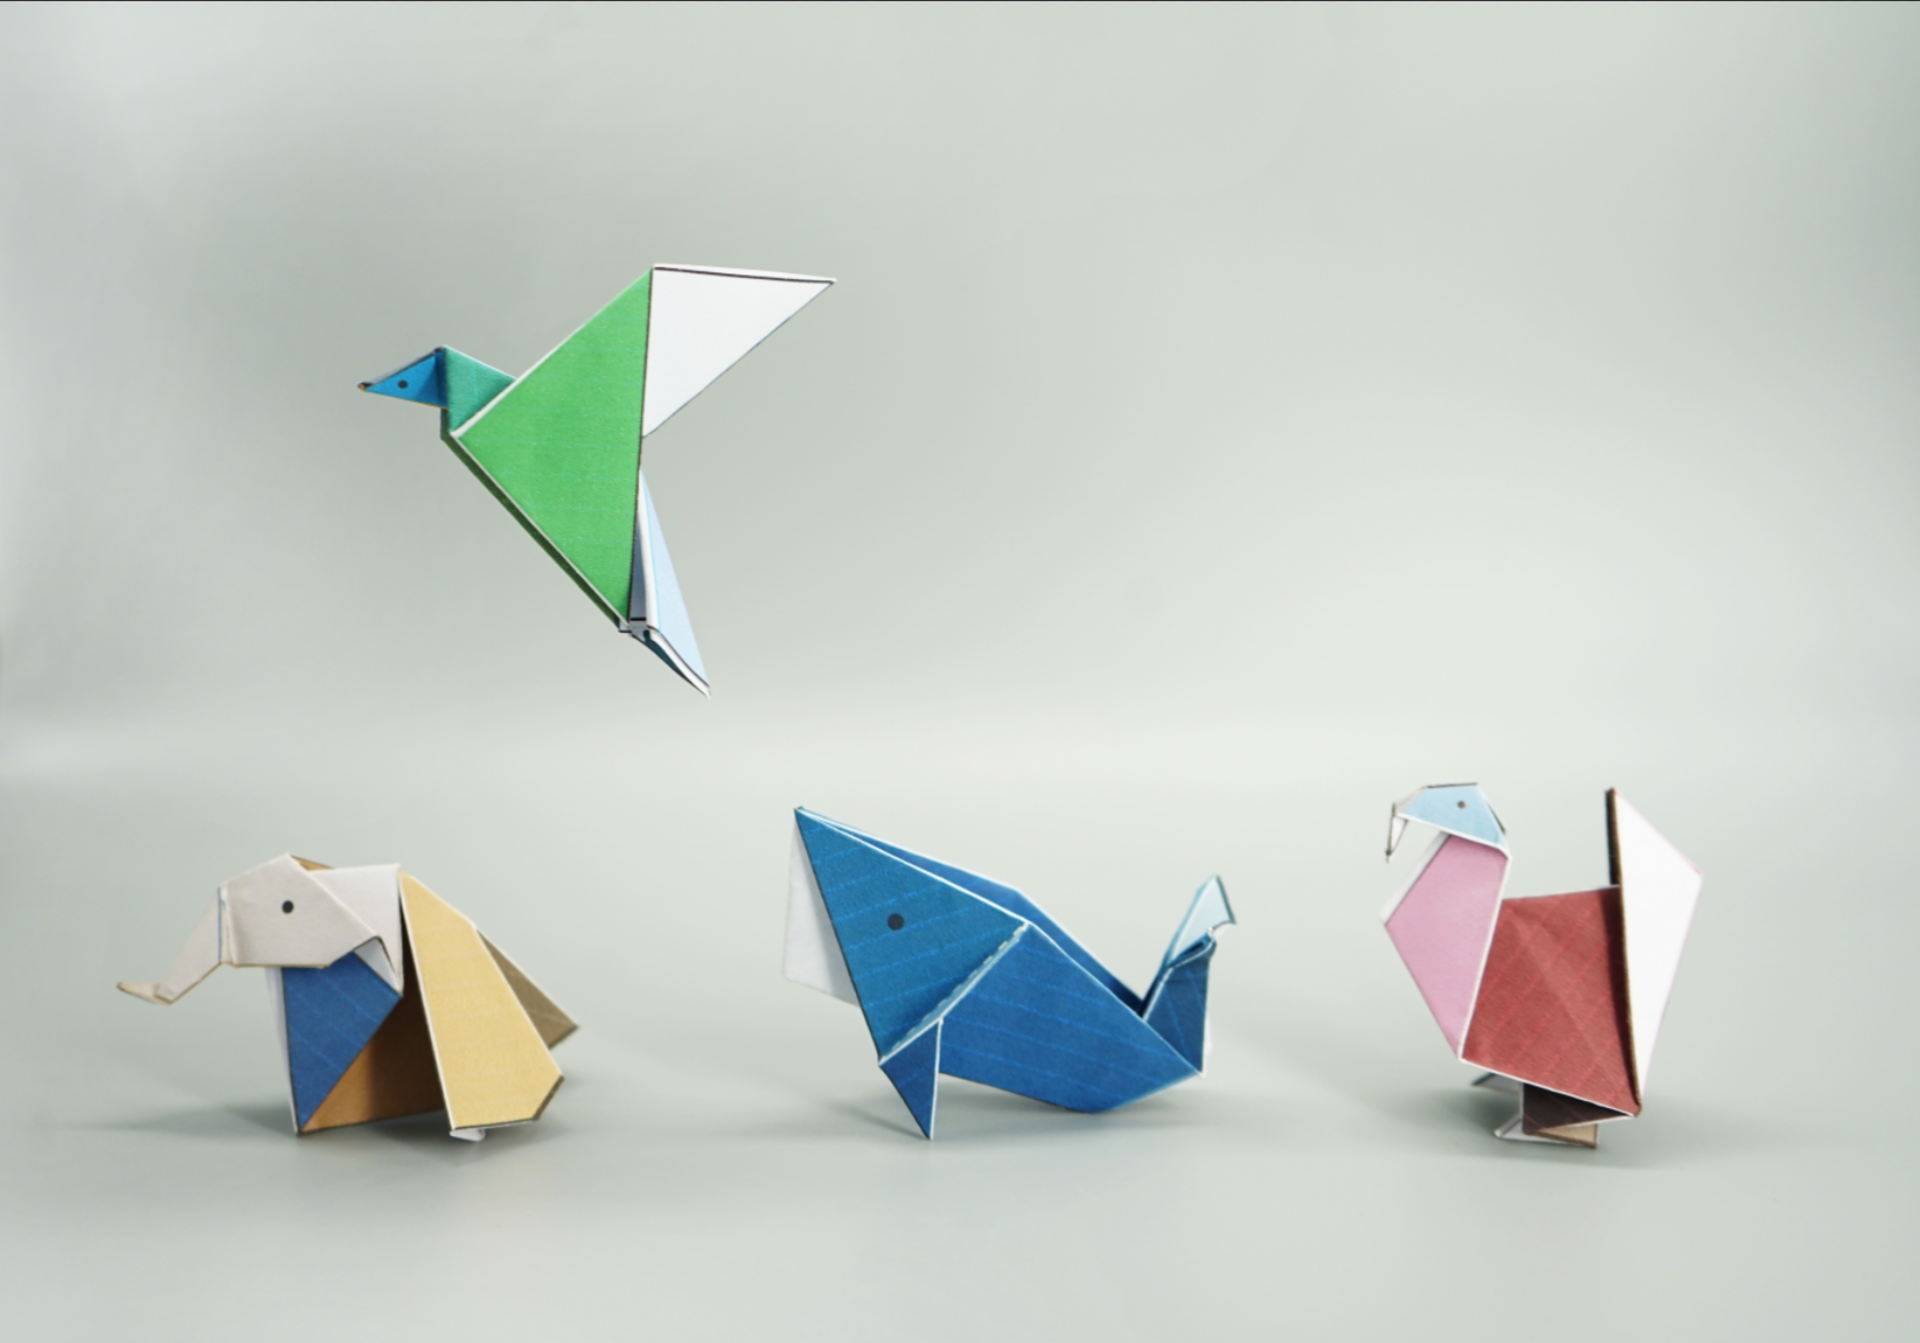 Outlooks of Origamis